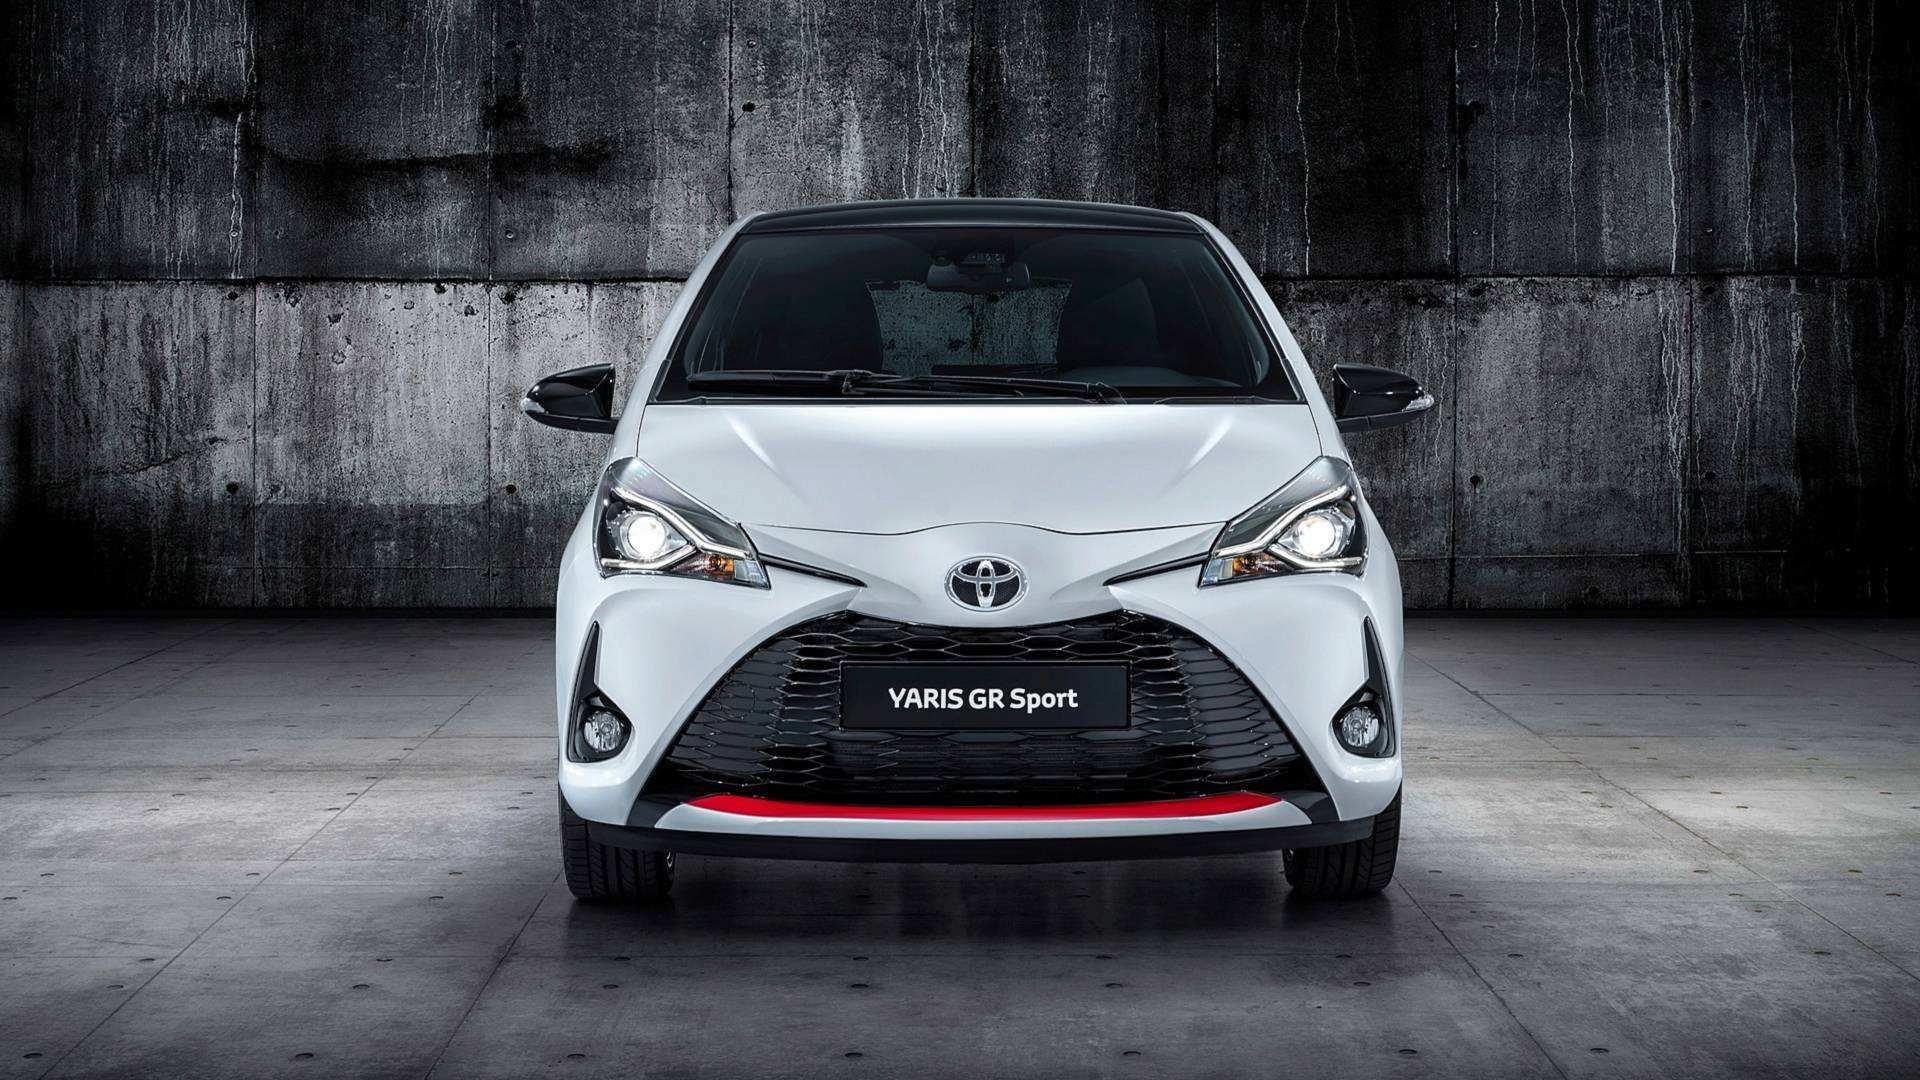 54 Concept of Toyota Yaris 2019 Europe Price and Review with Toyota Yaris 2019 Europe